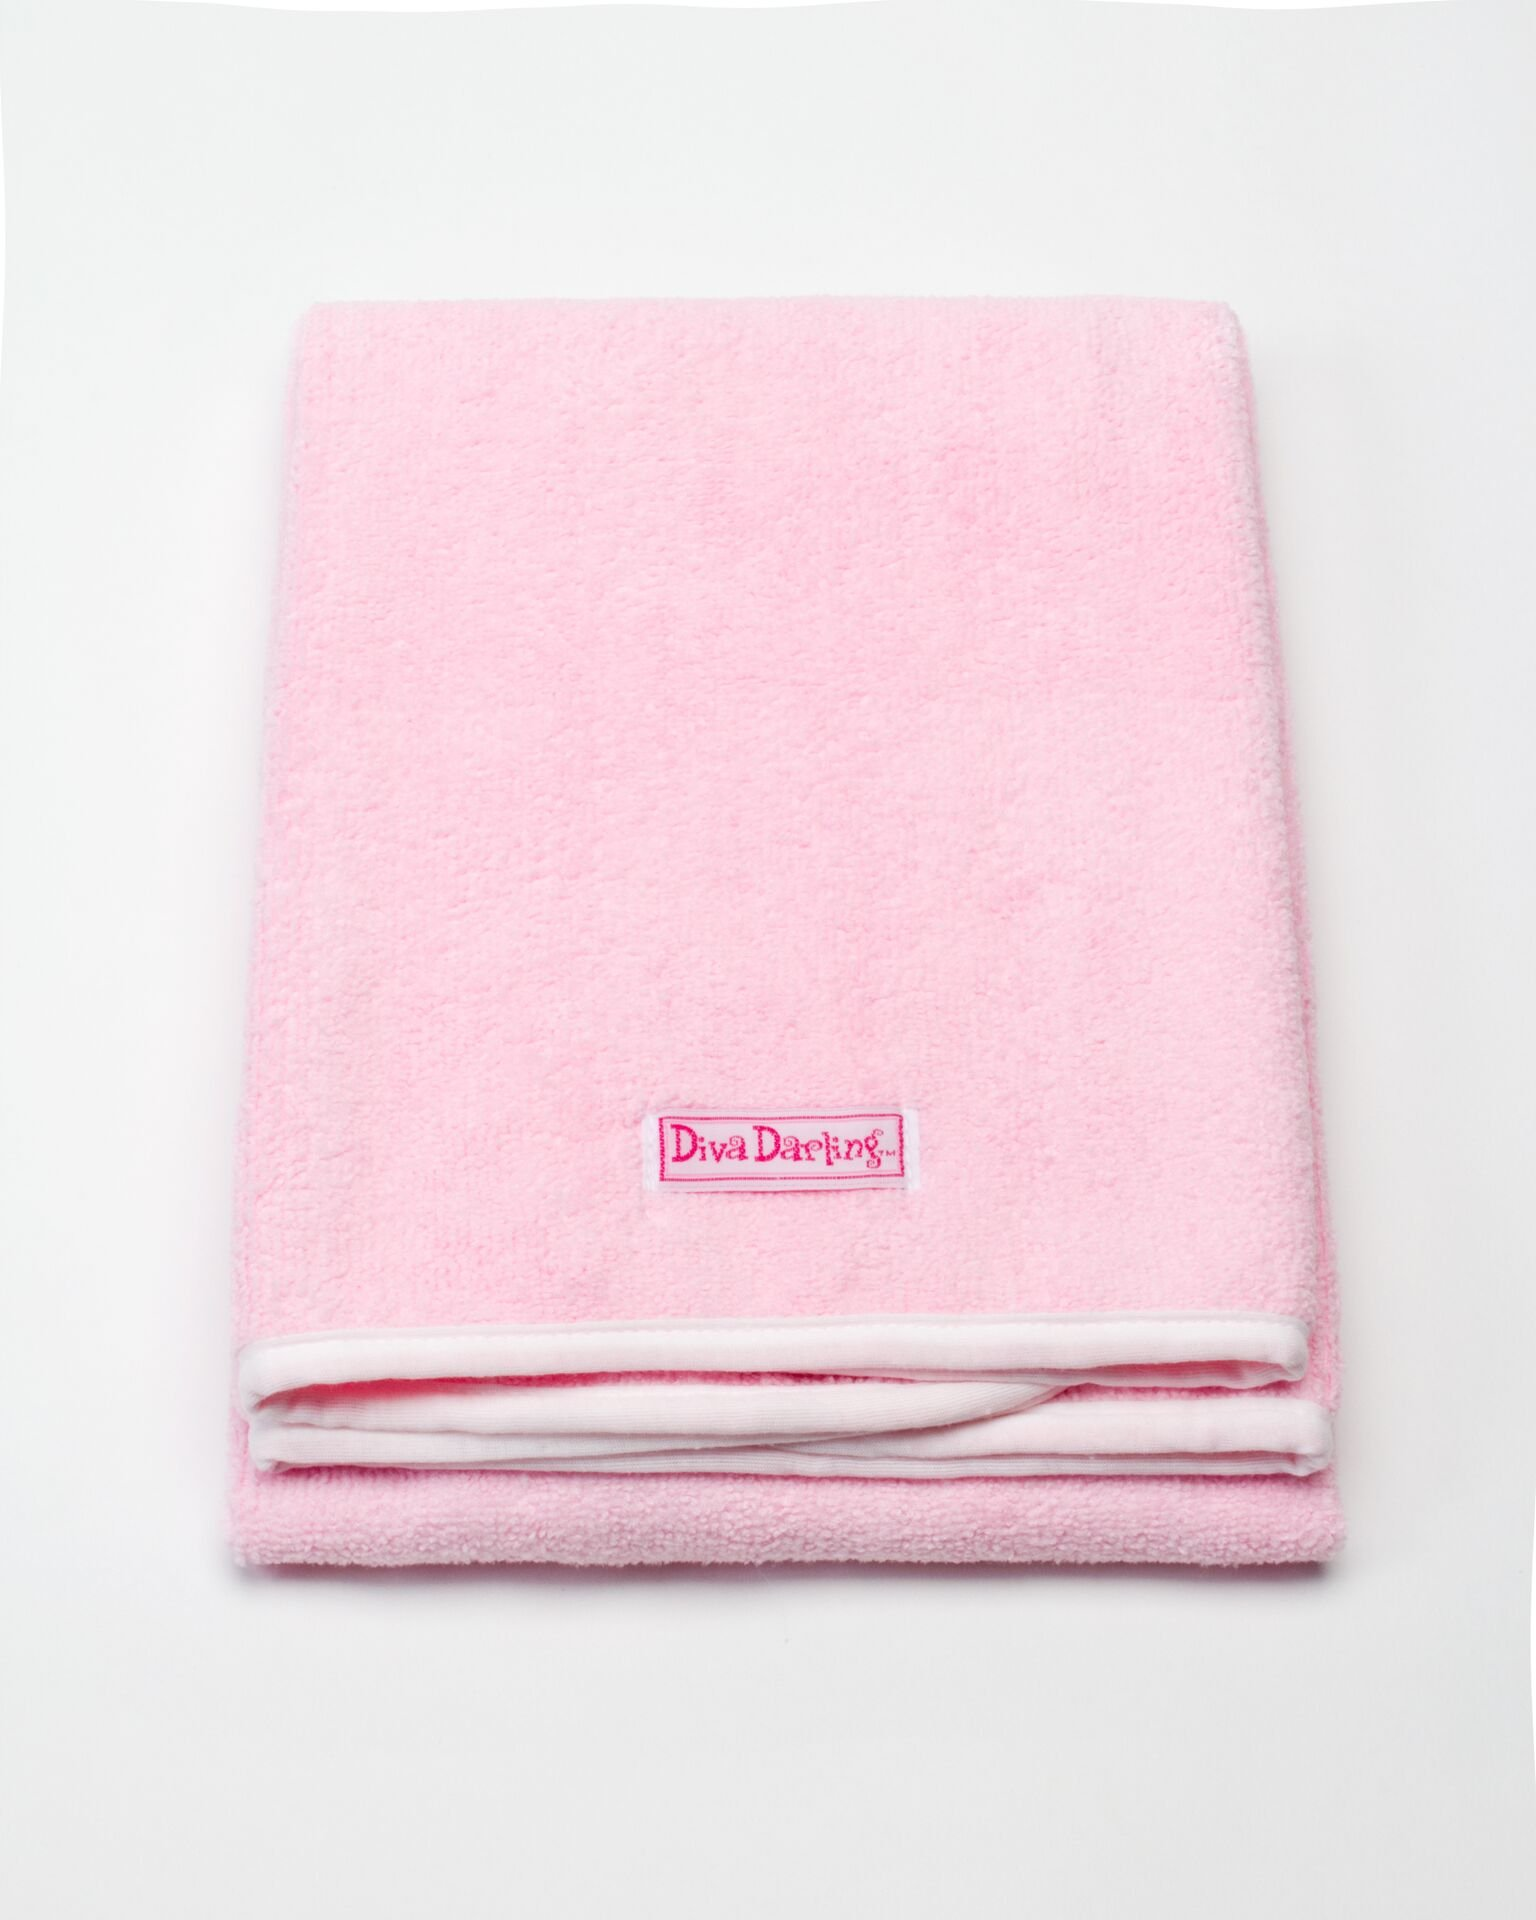 Diva Darling, Easy To Use & Super Absorbent Microfiber Hair Towel, Pink (19 x 39-Inches) by Diva Darling